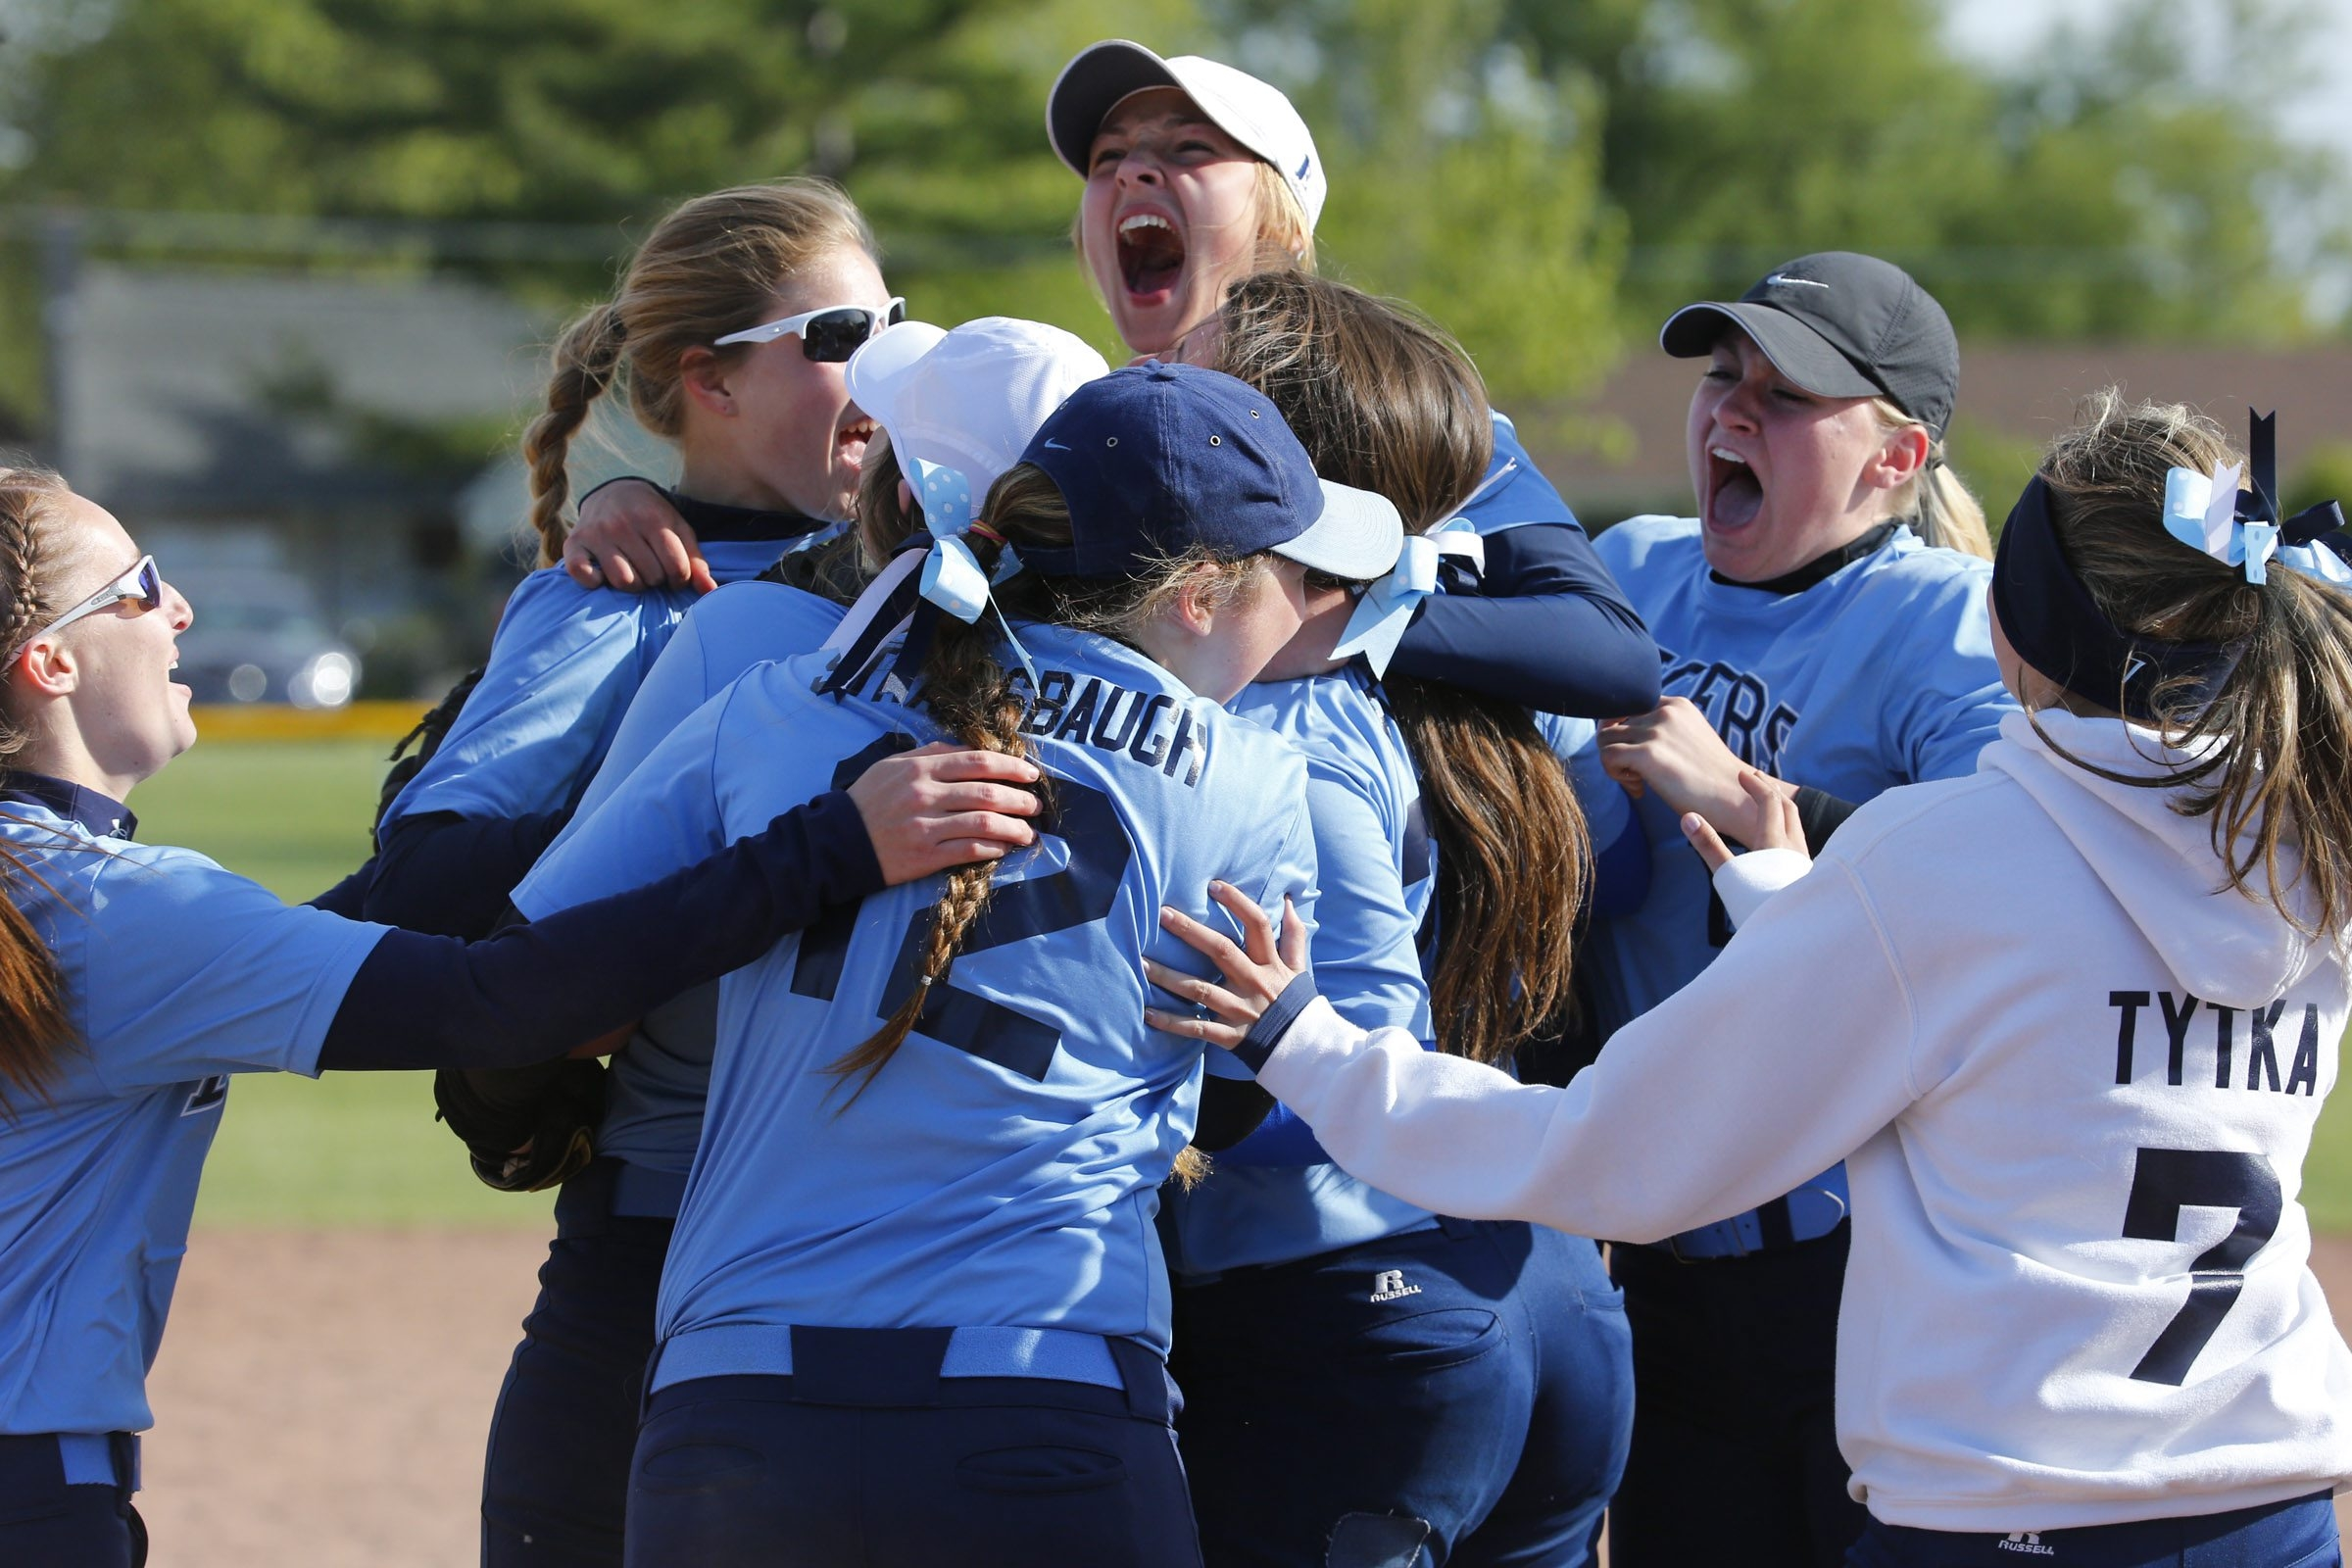 St. Mary's players celebrate their 7-6 victory over Nichols in the Monsignor Martin Association championship game.